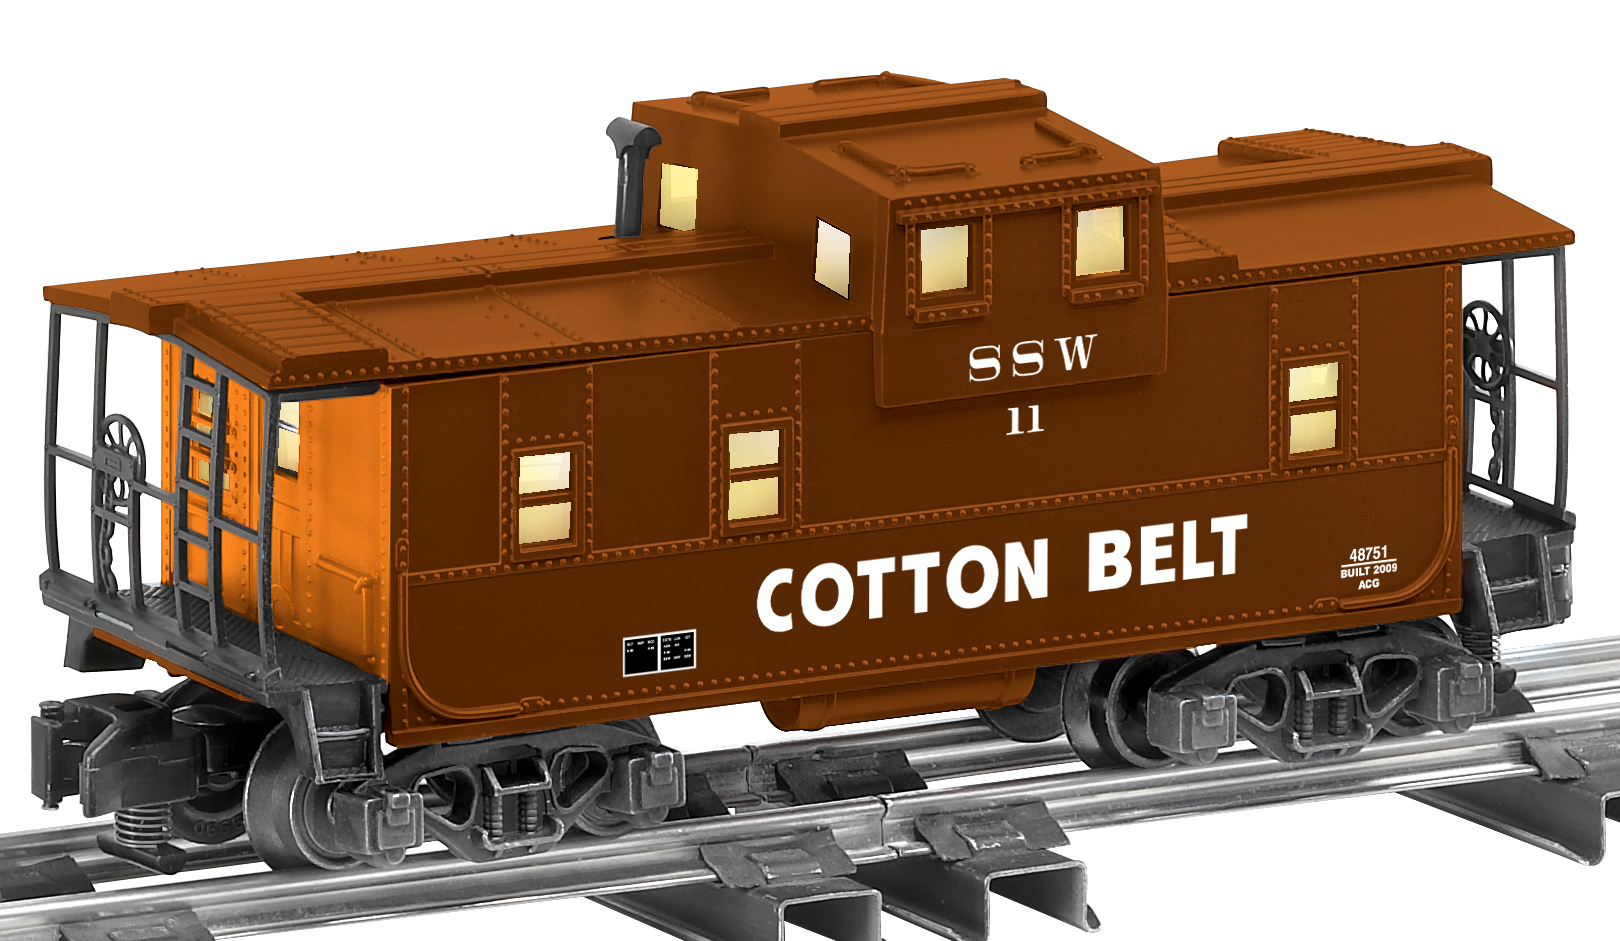 6-48751 COTTON BELT EXTENDED VISION CABOOSE